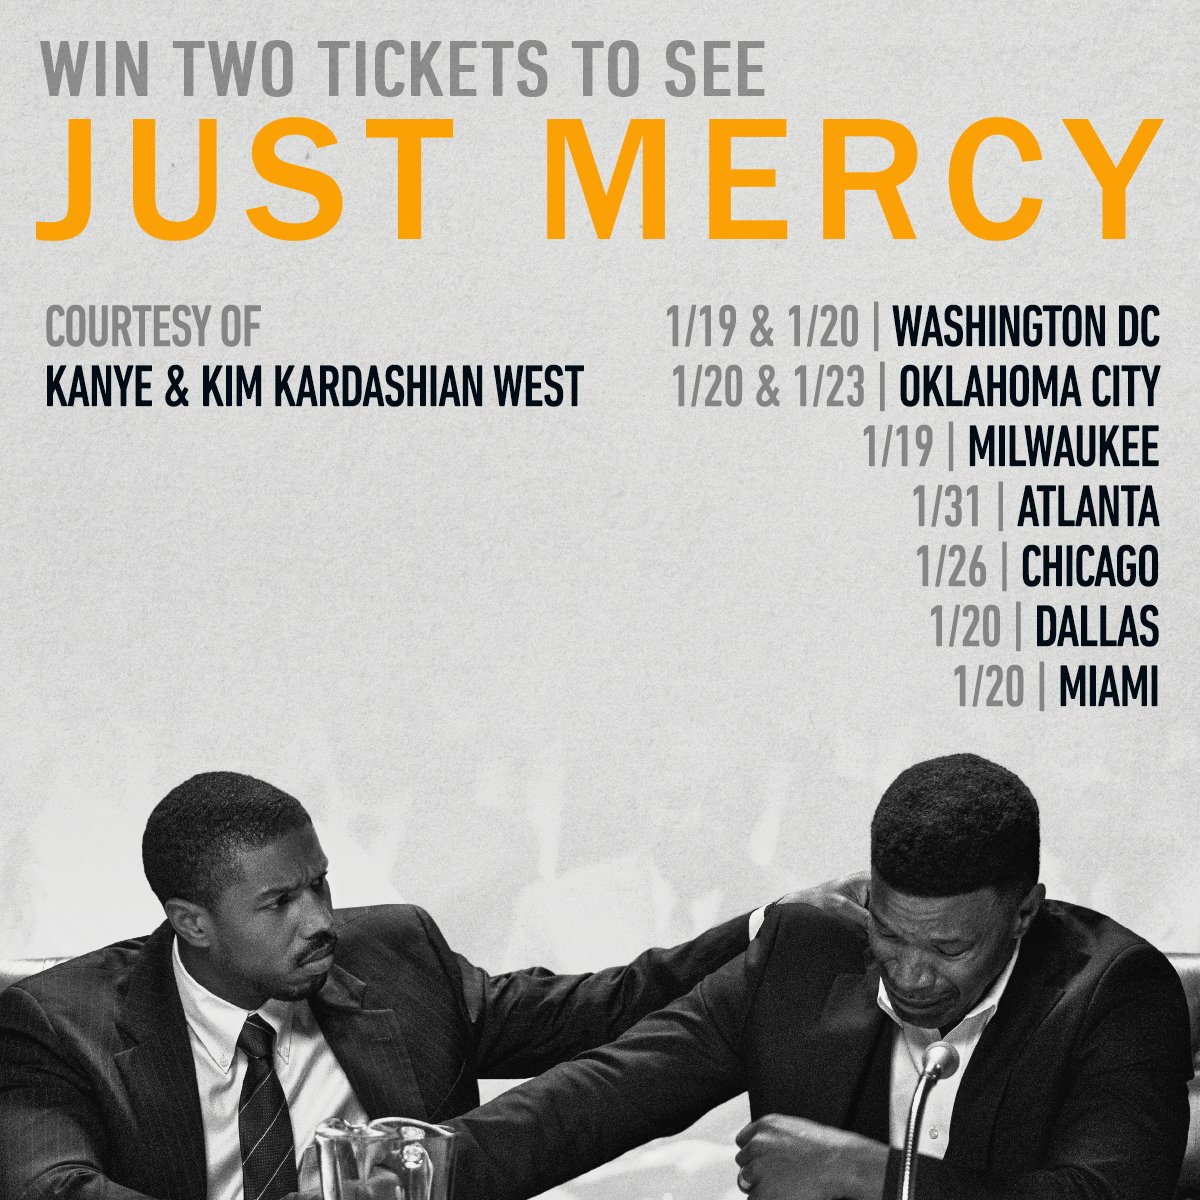 Thanks to @KanyeWest  and @KimKardashian  for buying out theaters in Atlanta, Chicago, Dallas, D.C., Miami and OKC! Want them to bring #JustMercy  to your city? You can still sign up here:  https://www.representjustice.org/kkw/